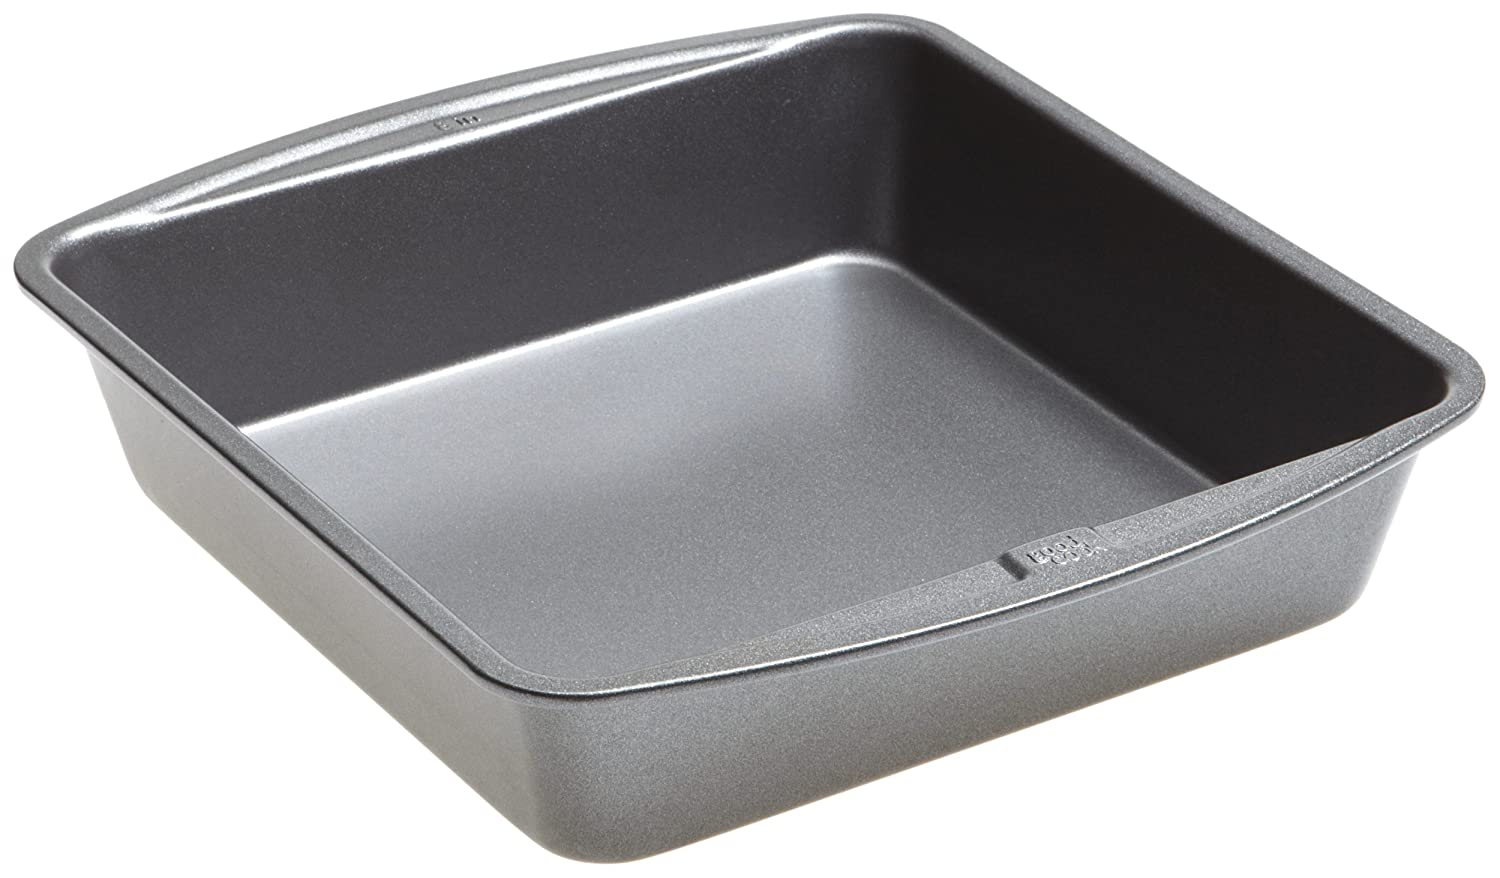 9 Baking Pans Every Baker Should Have This Baker